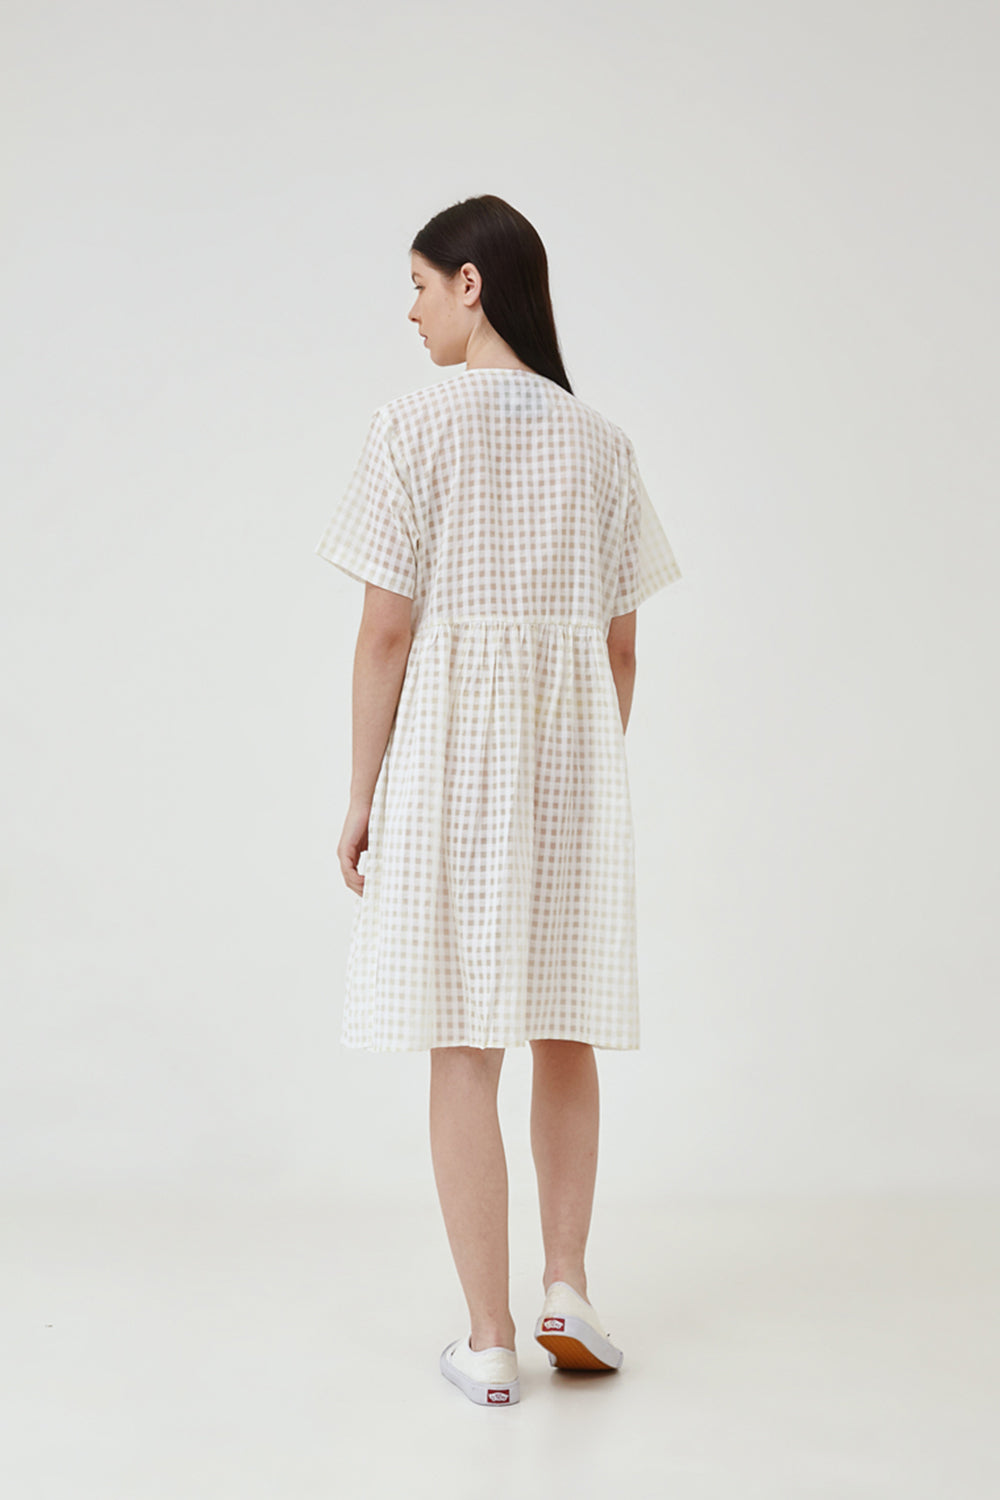 Mochi Dress in White